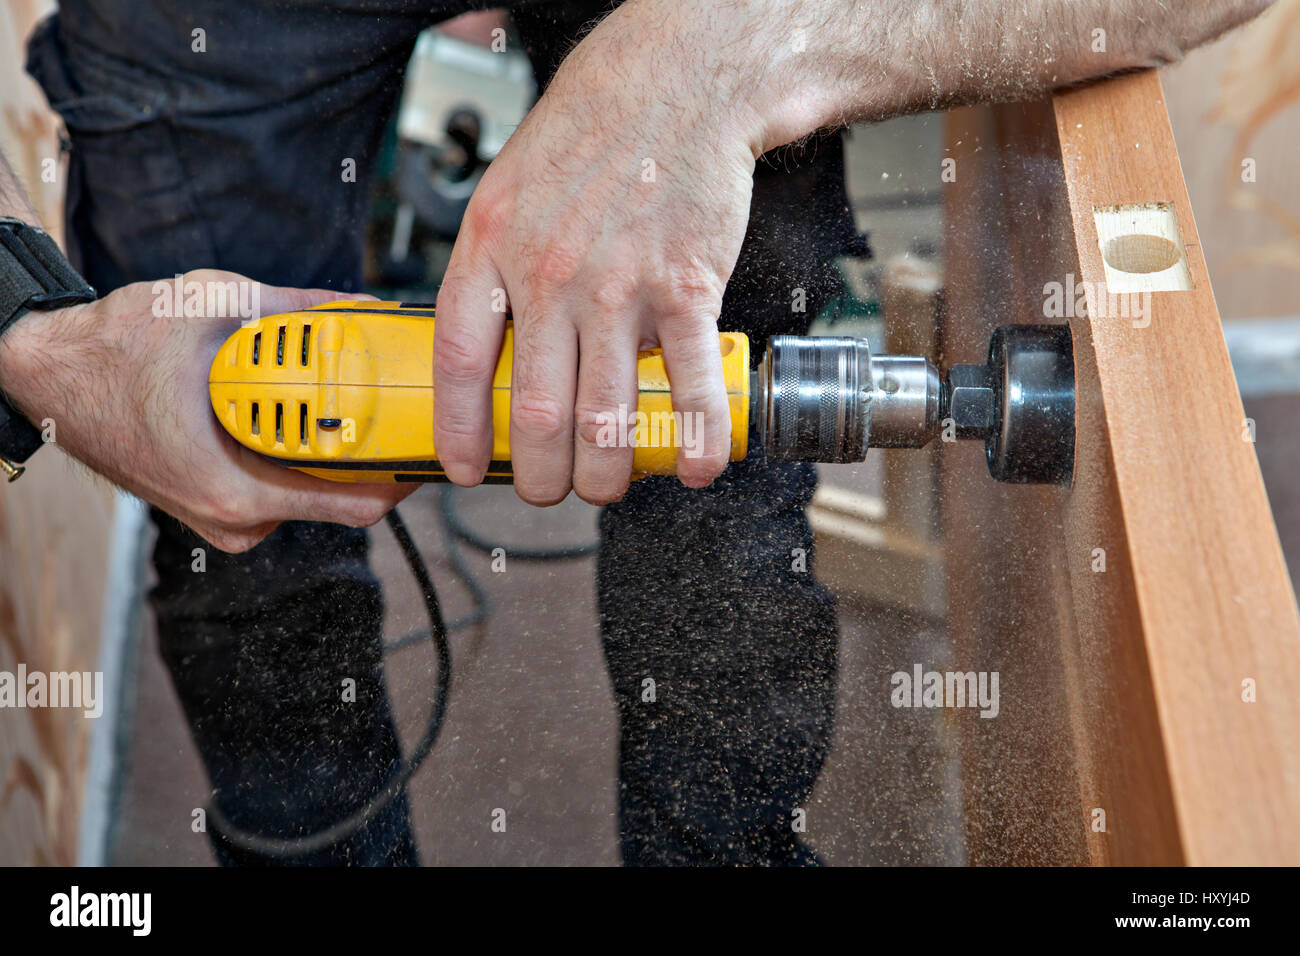 Hands woodworker with yellow electric drill, boring large hole of door lock, using hole saw drill bits, sawdust - Stock Image